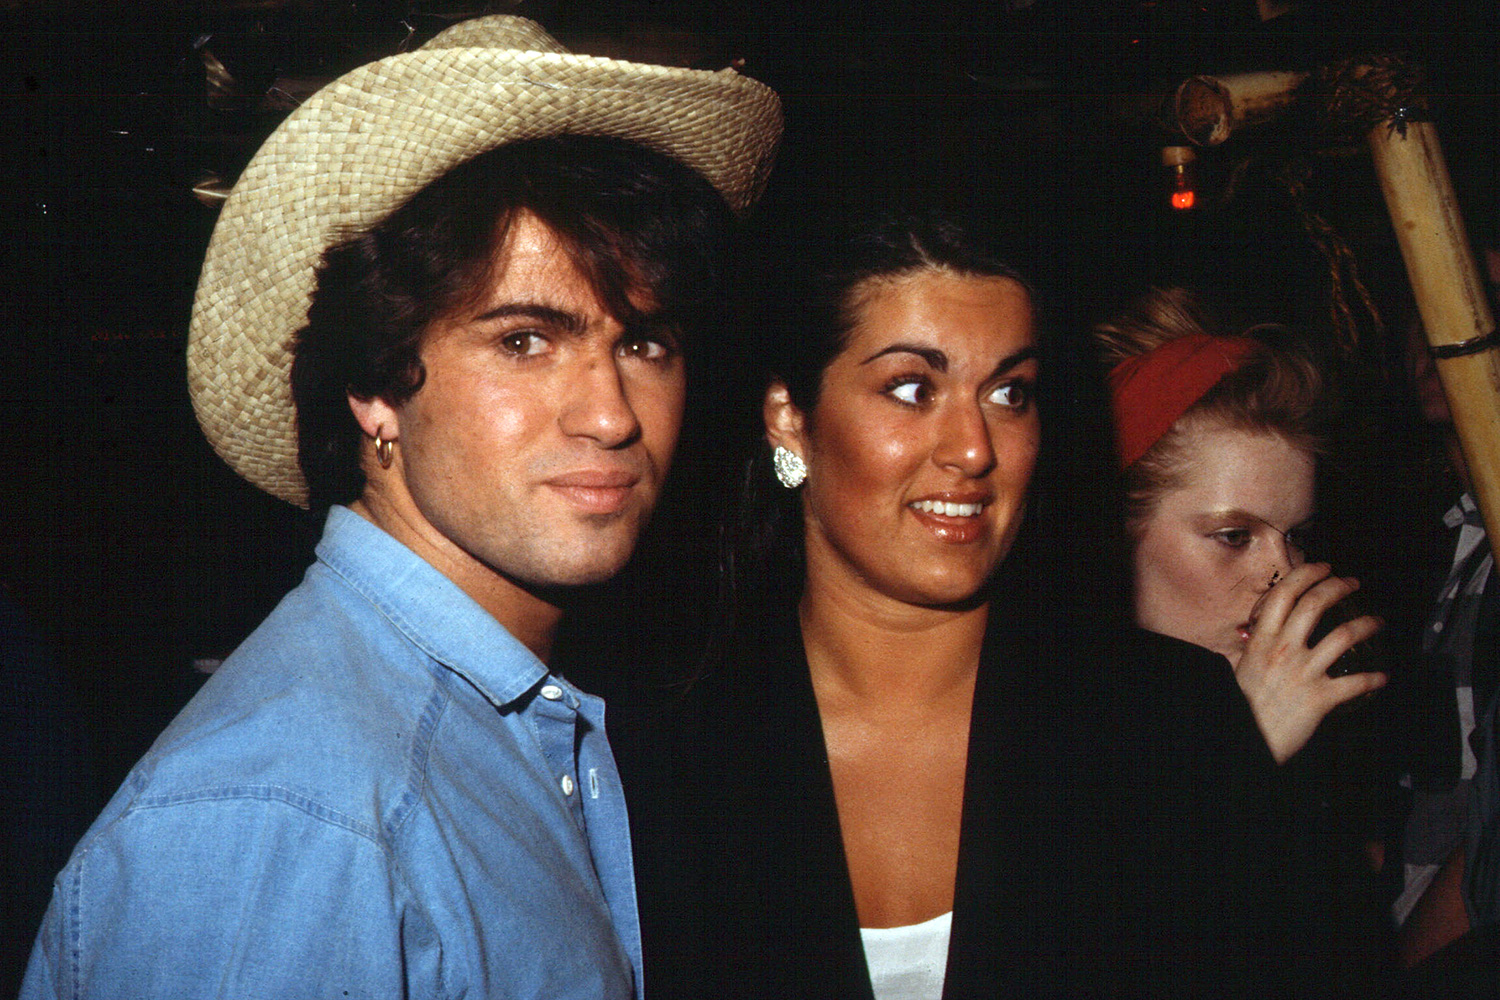 George Michael of Wham with sister Melanie in the mid 1980s